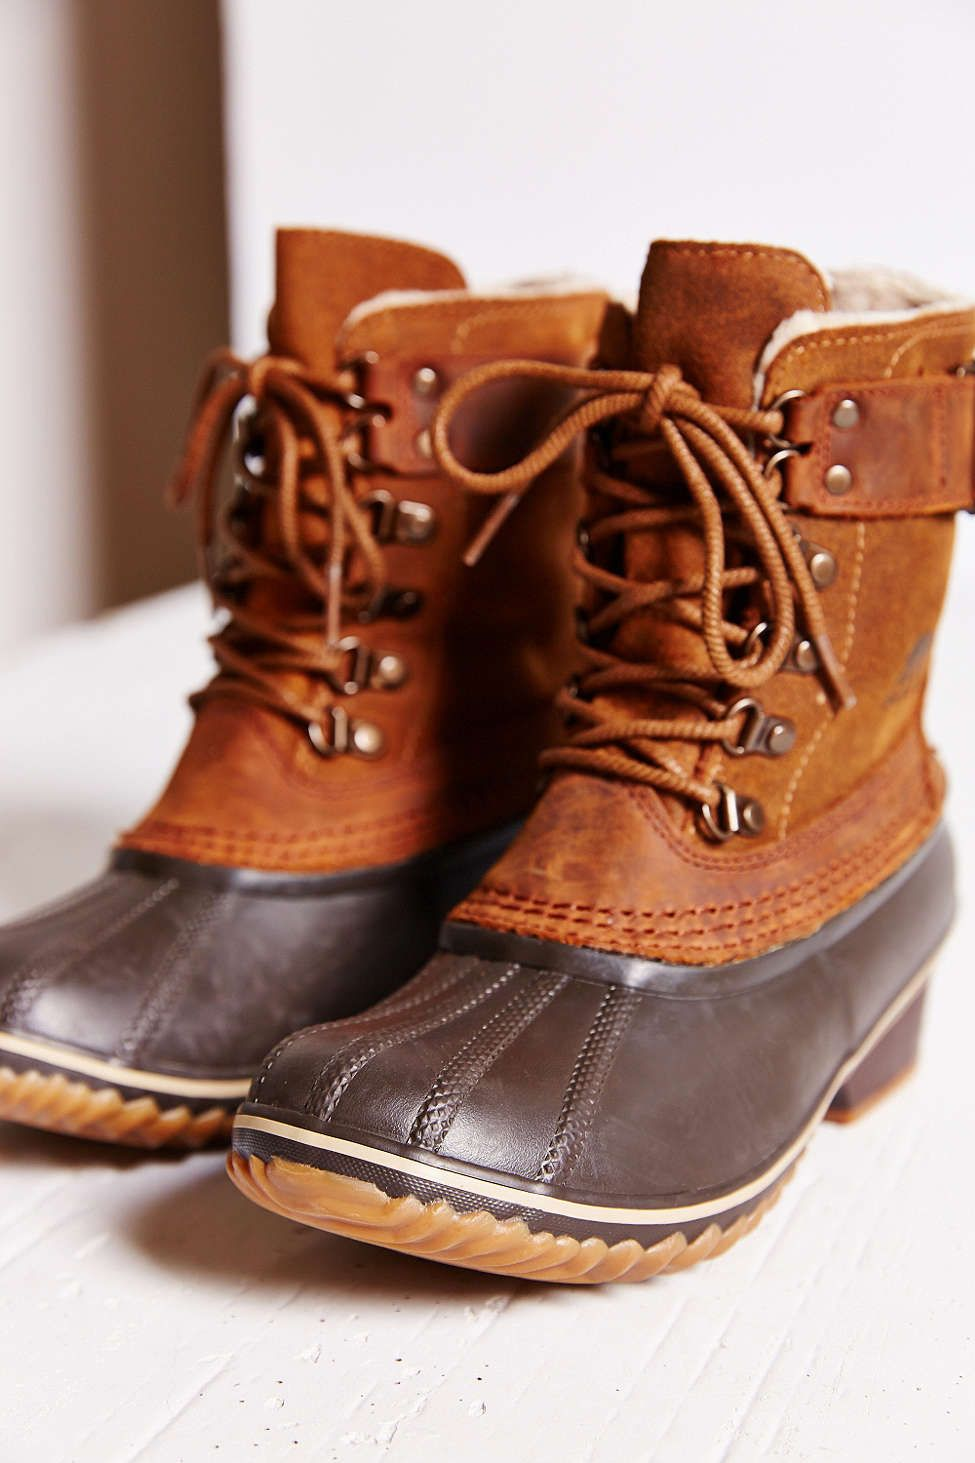 703e8ced9c90 Sorel Winter Fancy Lace-Up Boot - Urban Outfitters